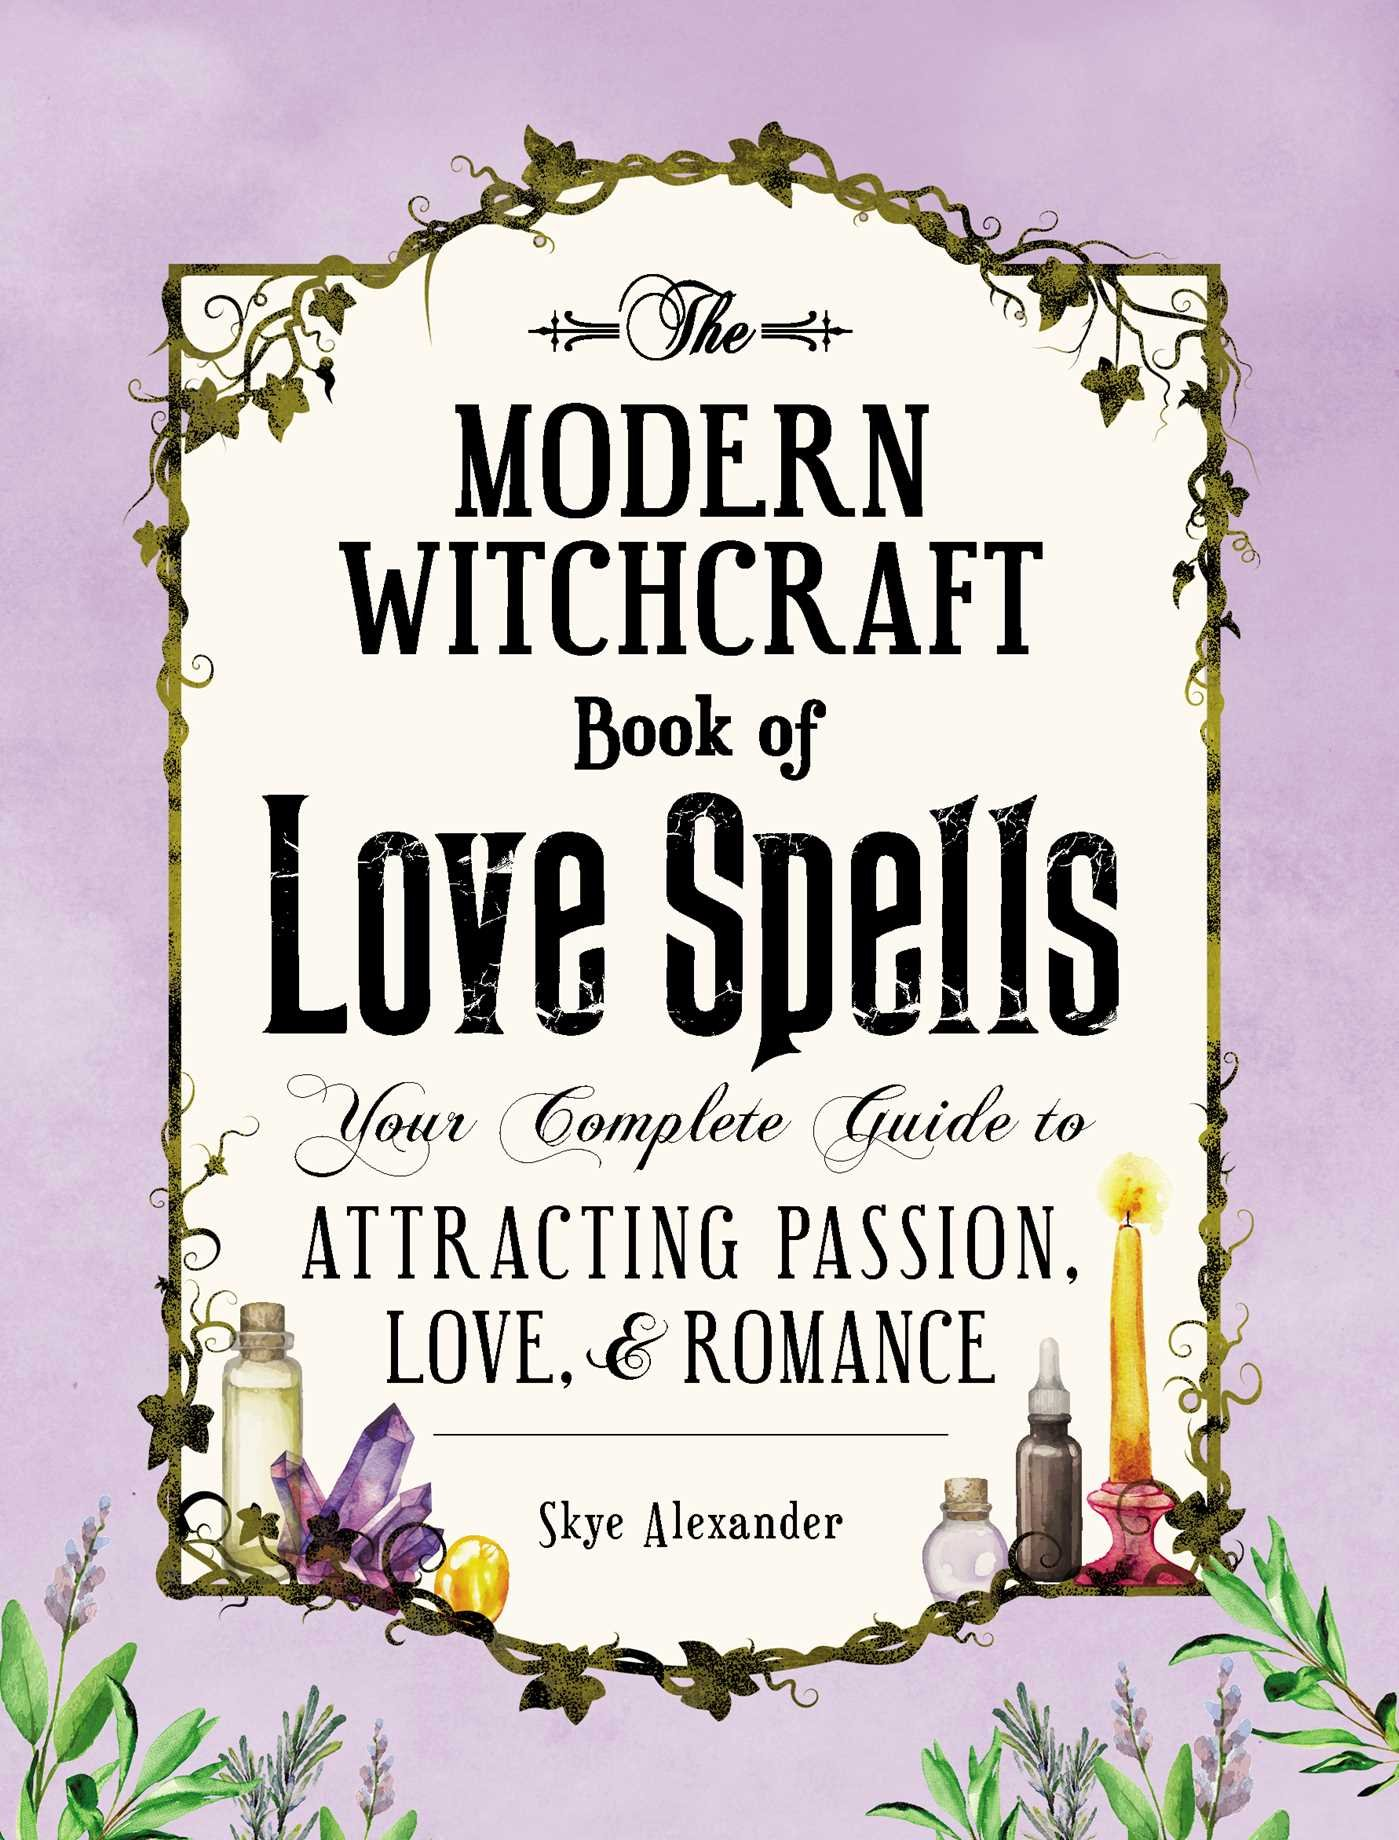 The Modern Witchcraft Book of Love Spells: Your Complete Guide to Attracting Passion, Love, and Romance pdf